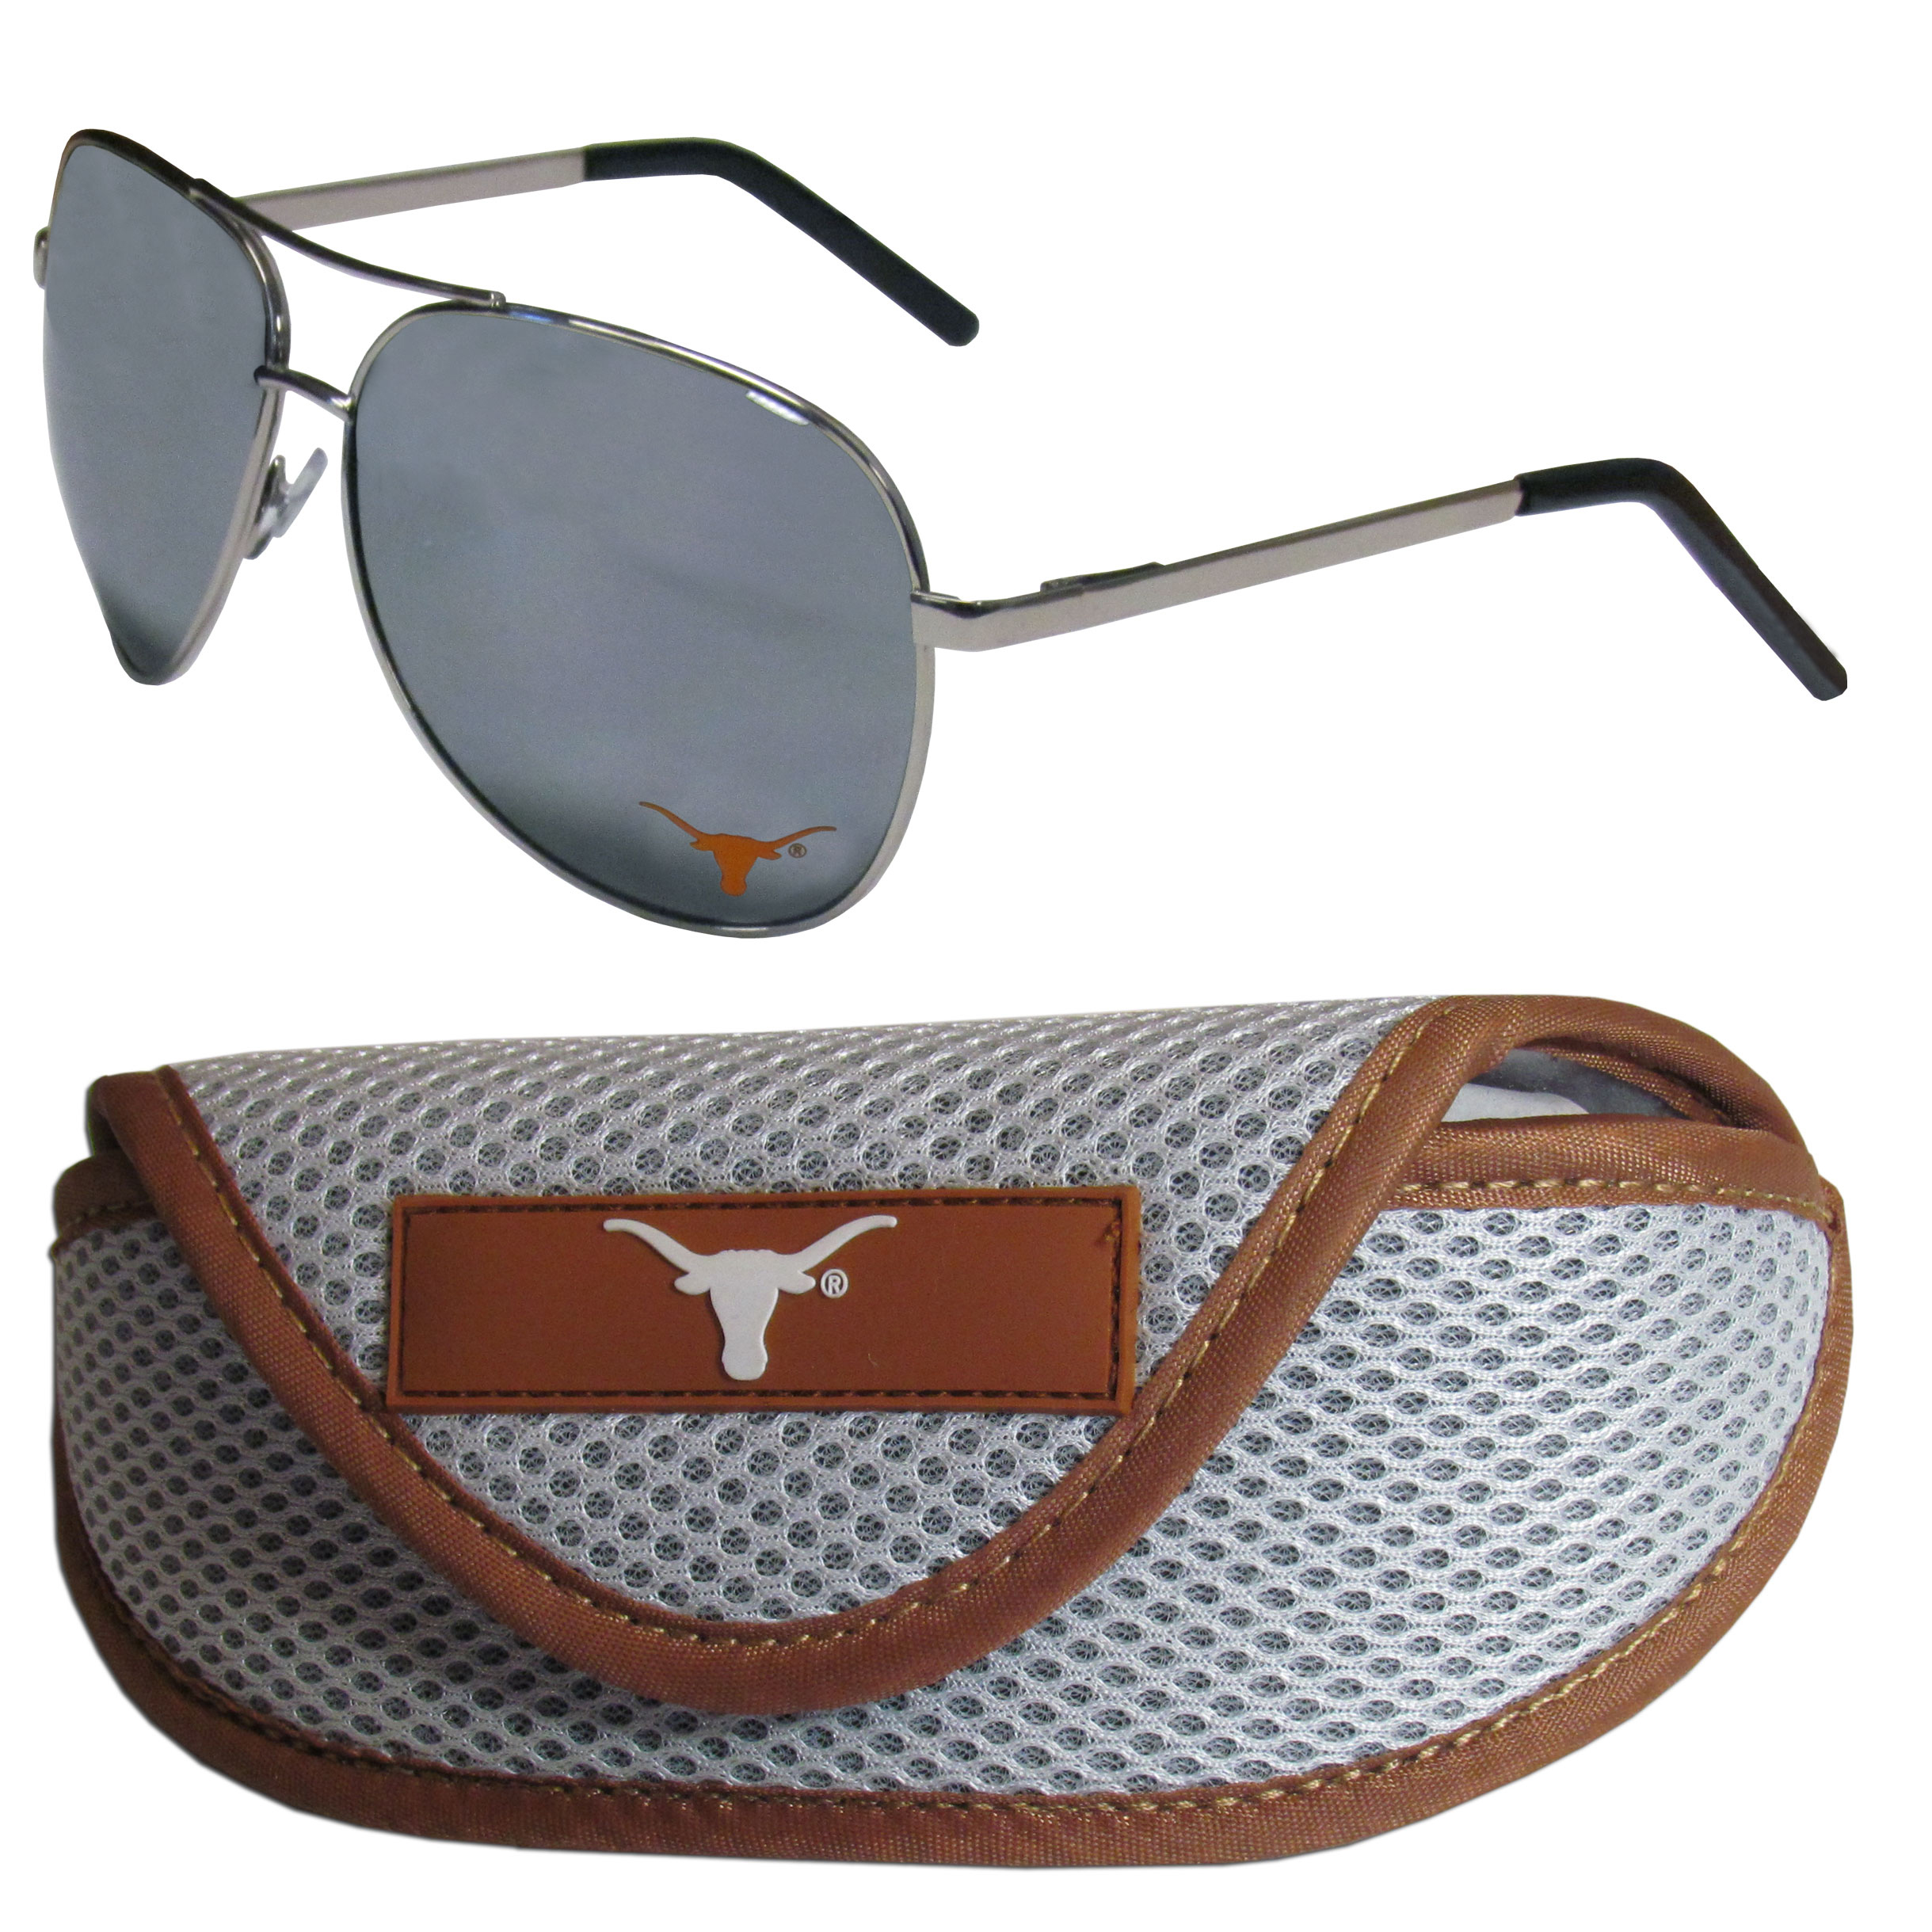 Texas Longhorns Aviator Sunglasses and Sports Case - Aviator sunglasses are truly an iconic retro fashion statement that never goes out-of-style. Our Texas Longhorns  aviator sunglasses pair this classic look with your love of the game. The iridium coated lenses reduce glare while driving, boating, golfing and their 100% UVA/UVB rating provides you with the maximum UV protection for all your outdoor activities. A millennial favorite, these affordable designer frames are the perfect eyewear accessory for a sports fan that is looking for high-quality at an affordable price. The durable, flex hinged frames are tough enough for hiking and camping or if you prefer sun bathing by the pool or on the beach these shades will really stand the test of time. The sunglasses come with a sporty case which has a large team logo on the lid that will make even the most die-hard fan proud!